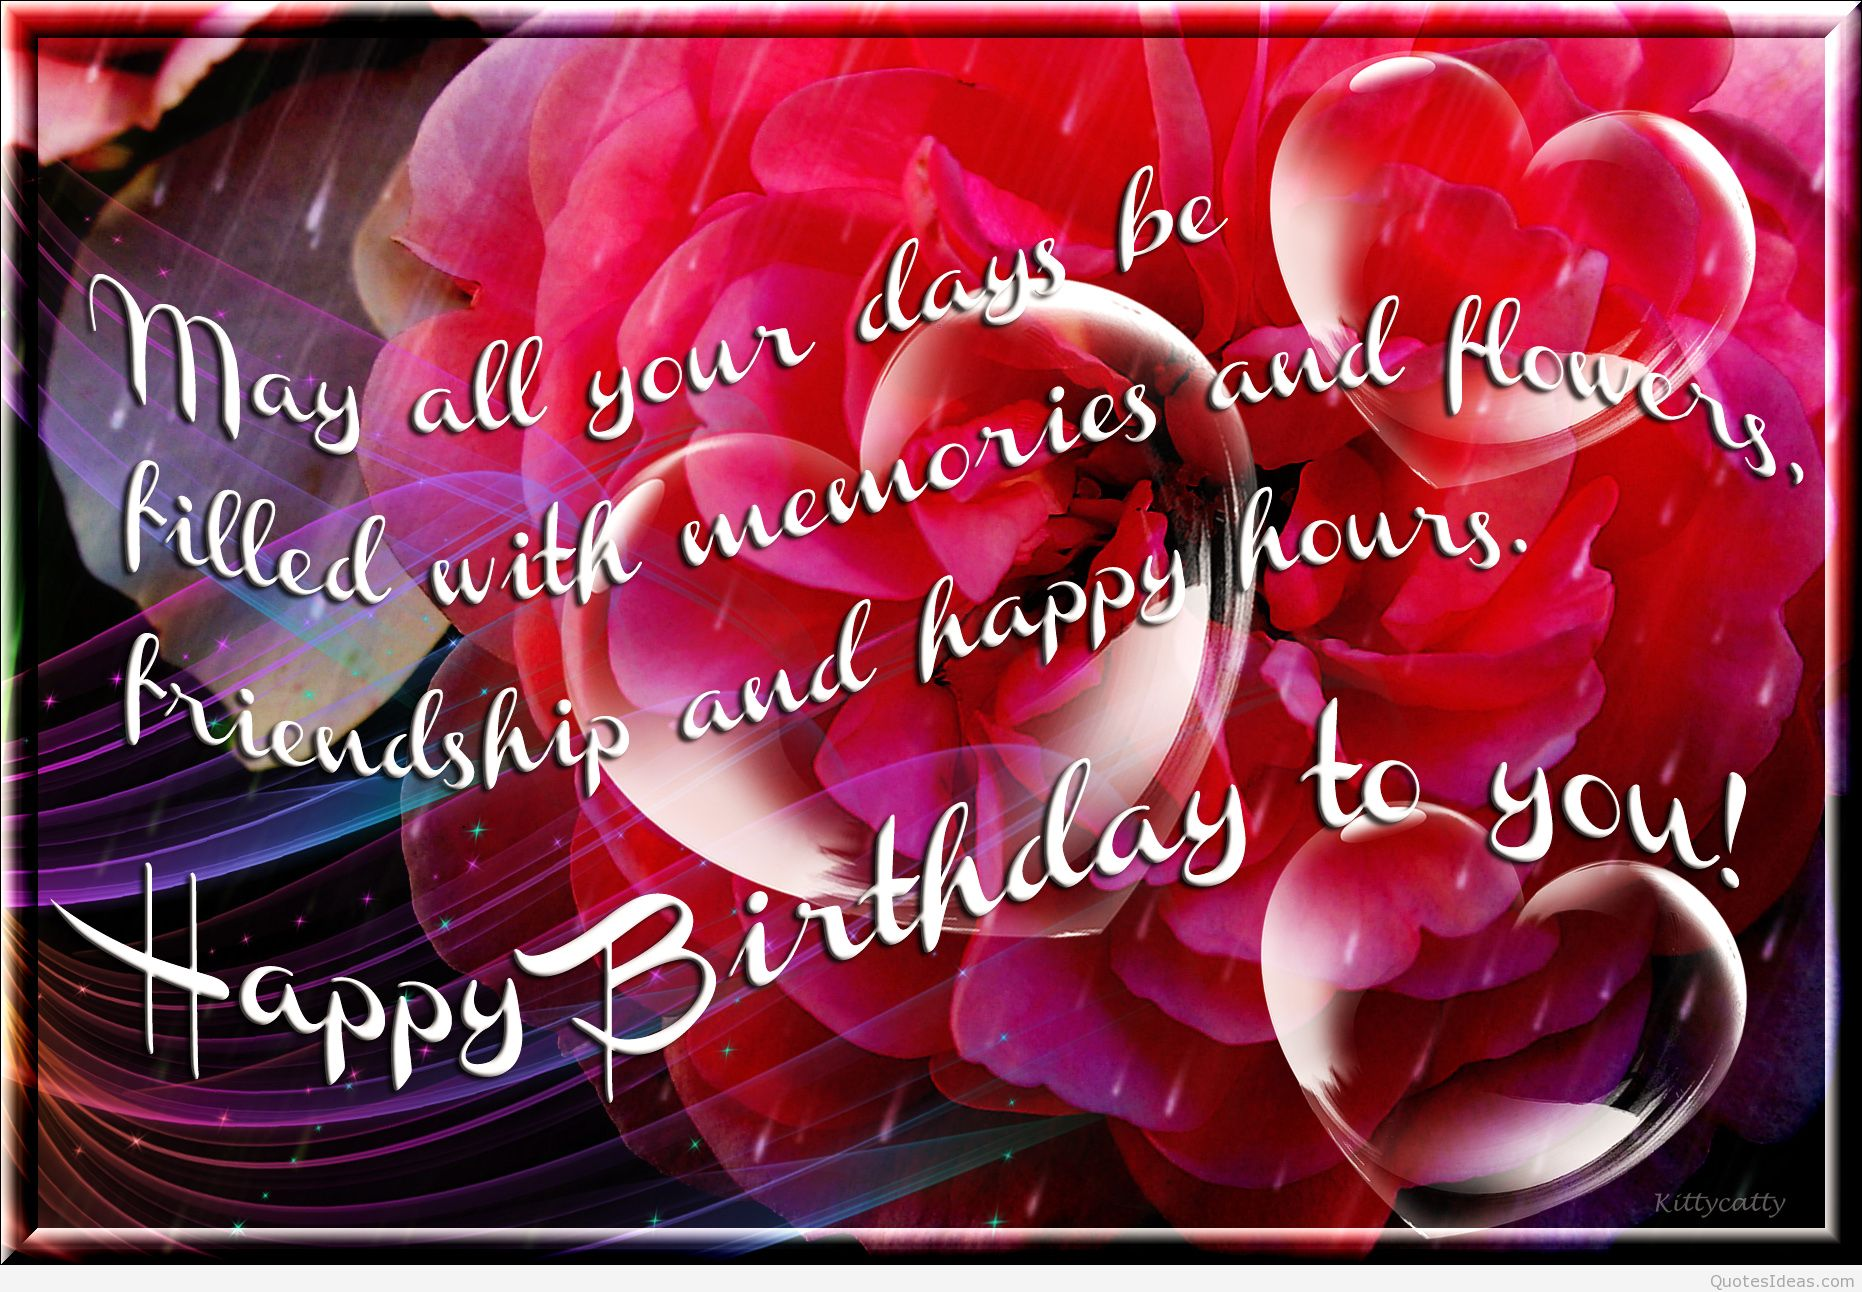 free birthday wallpaper images ; 997ae996a1218f7818716c44d82a773f